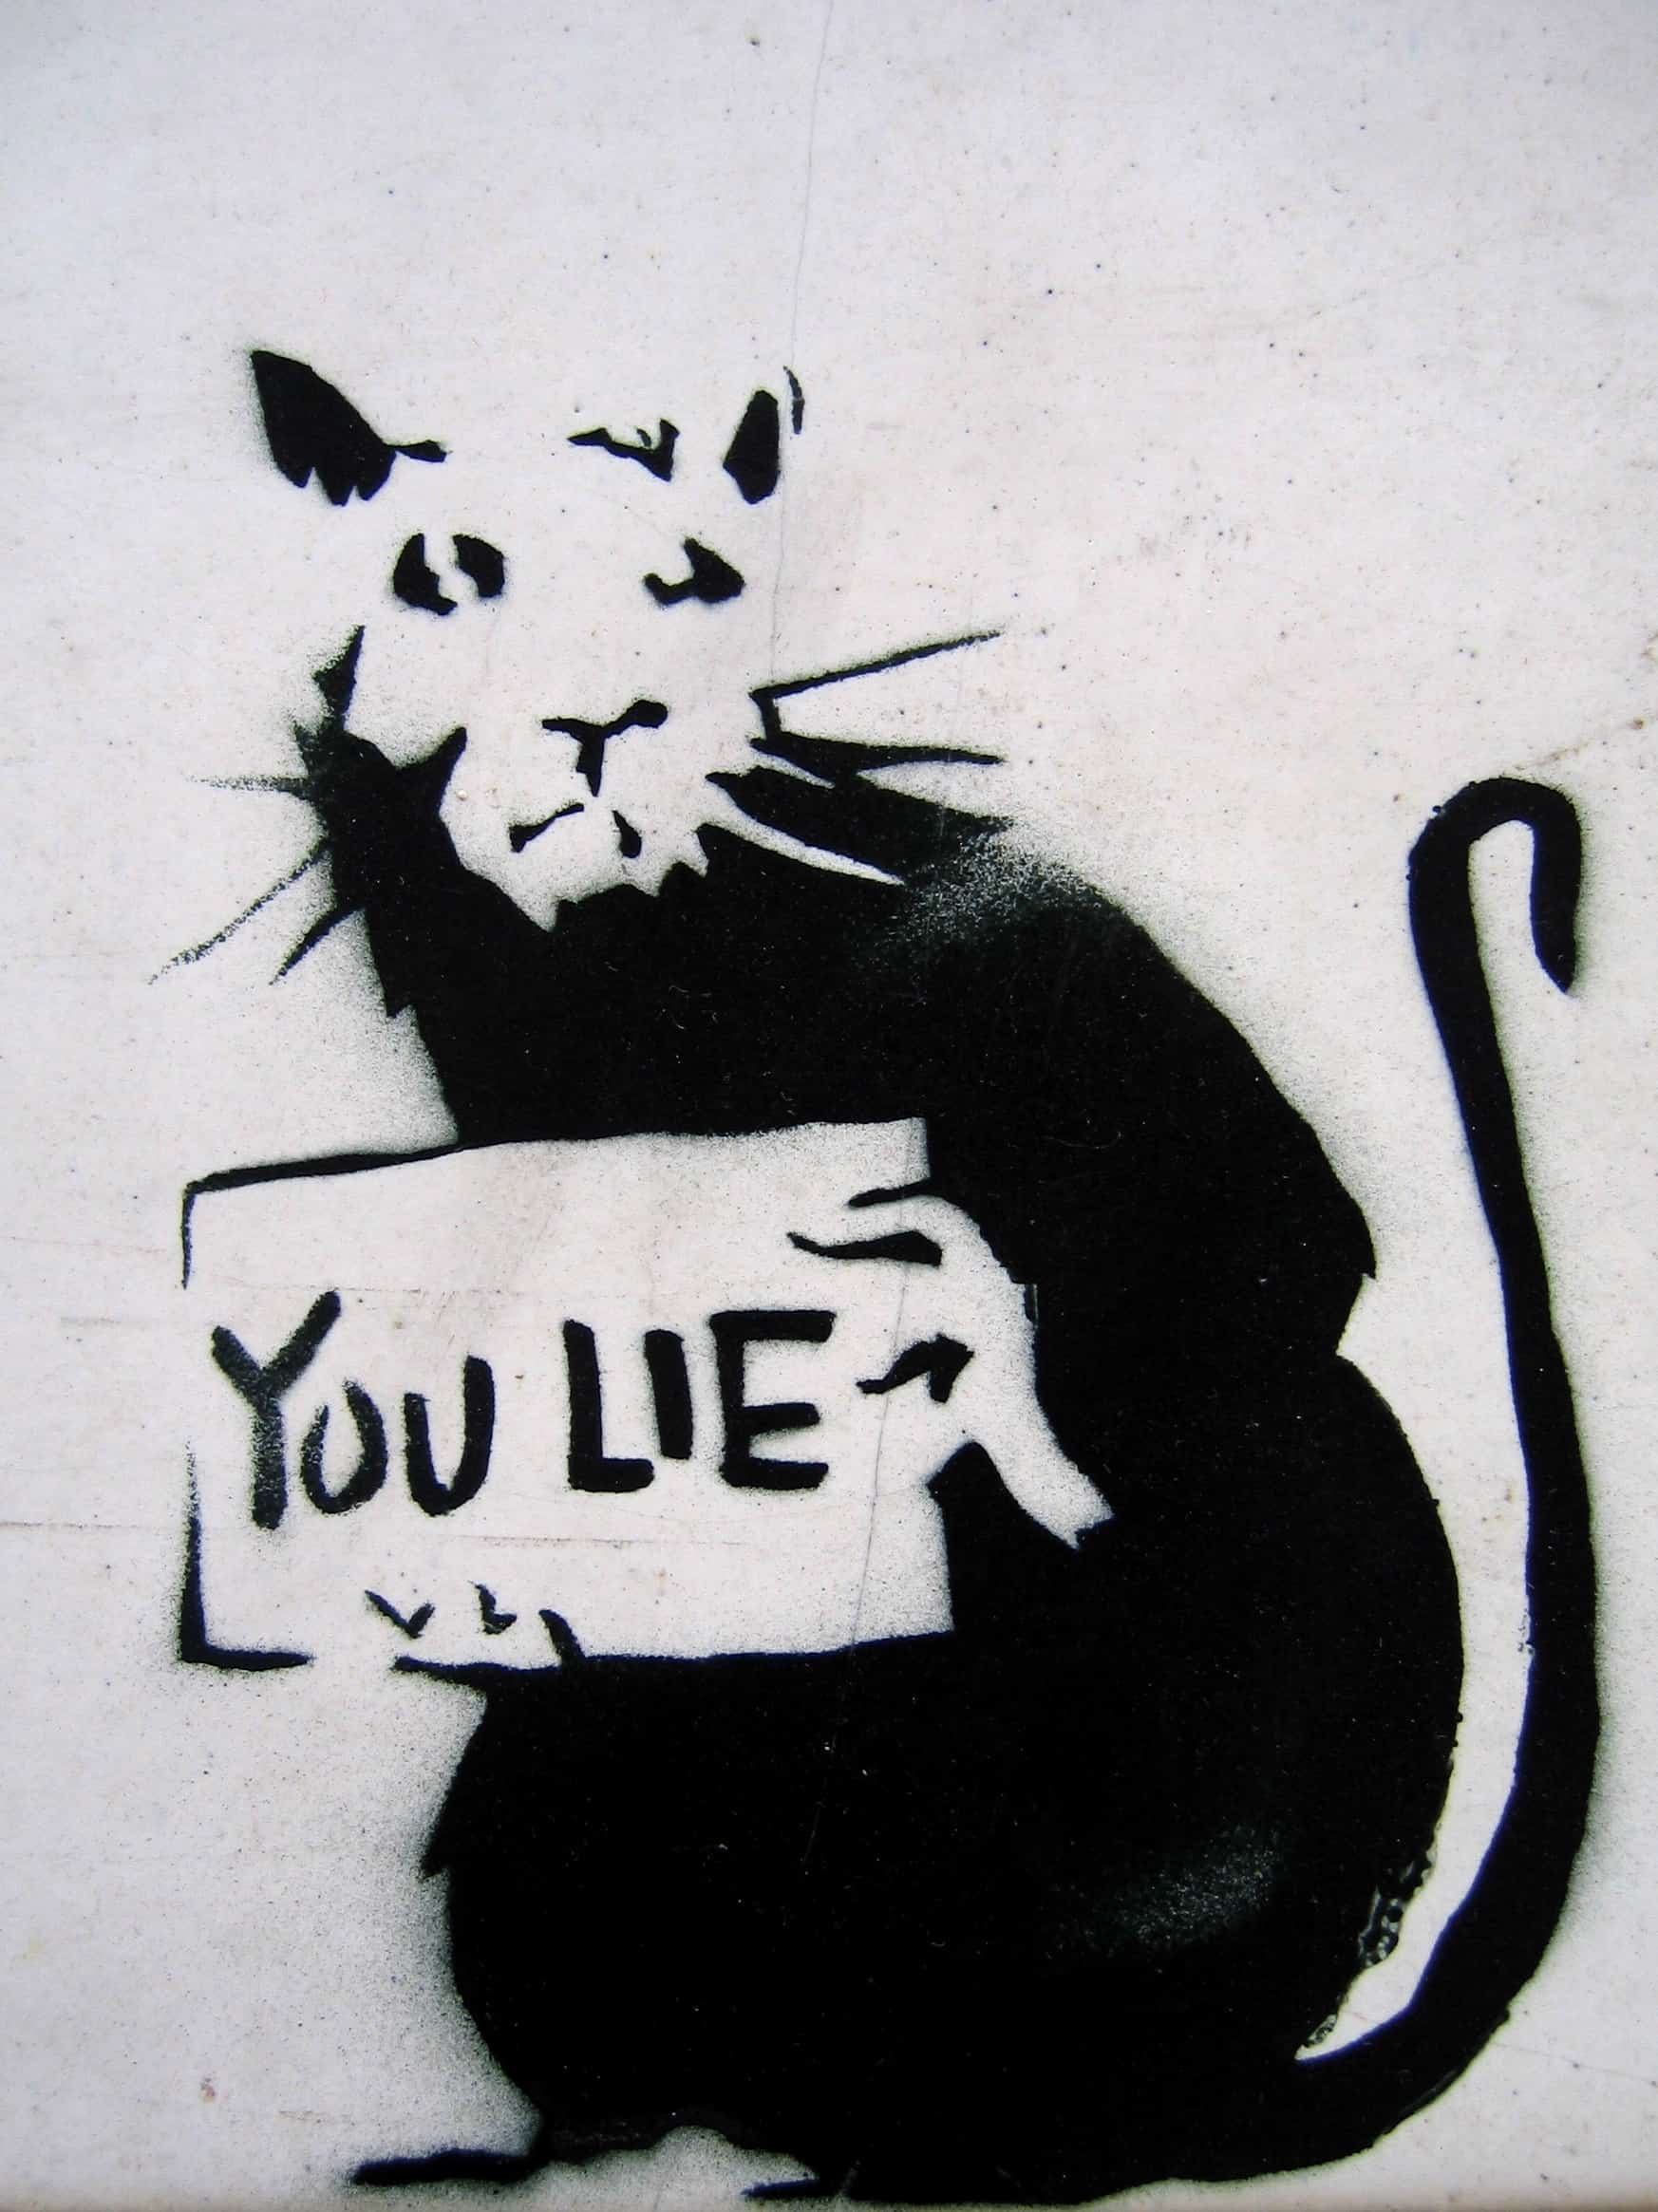 a graffiti of a rat holding a sign written you lie